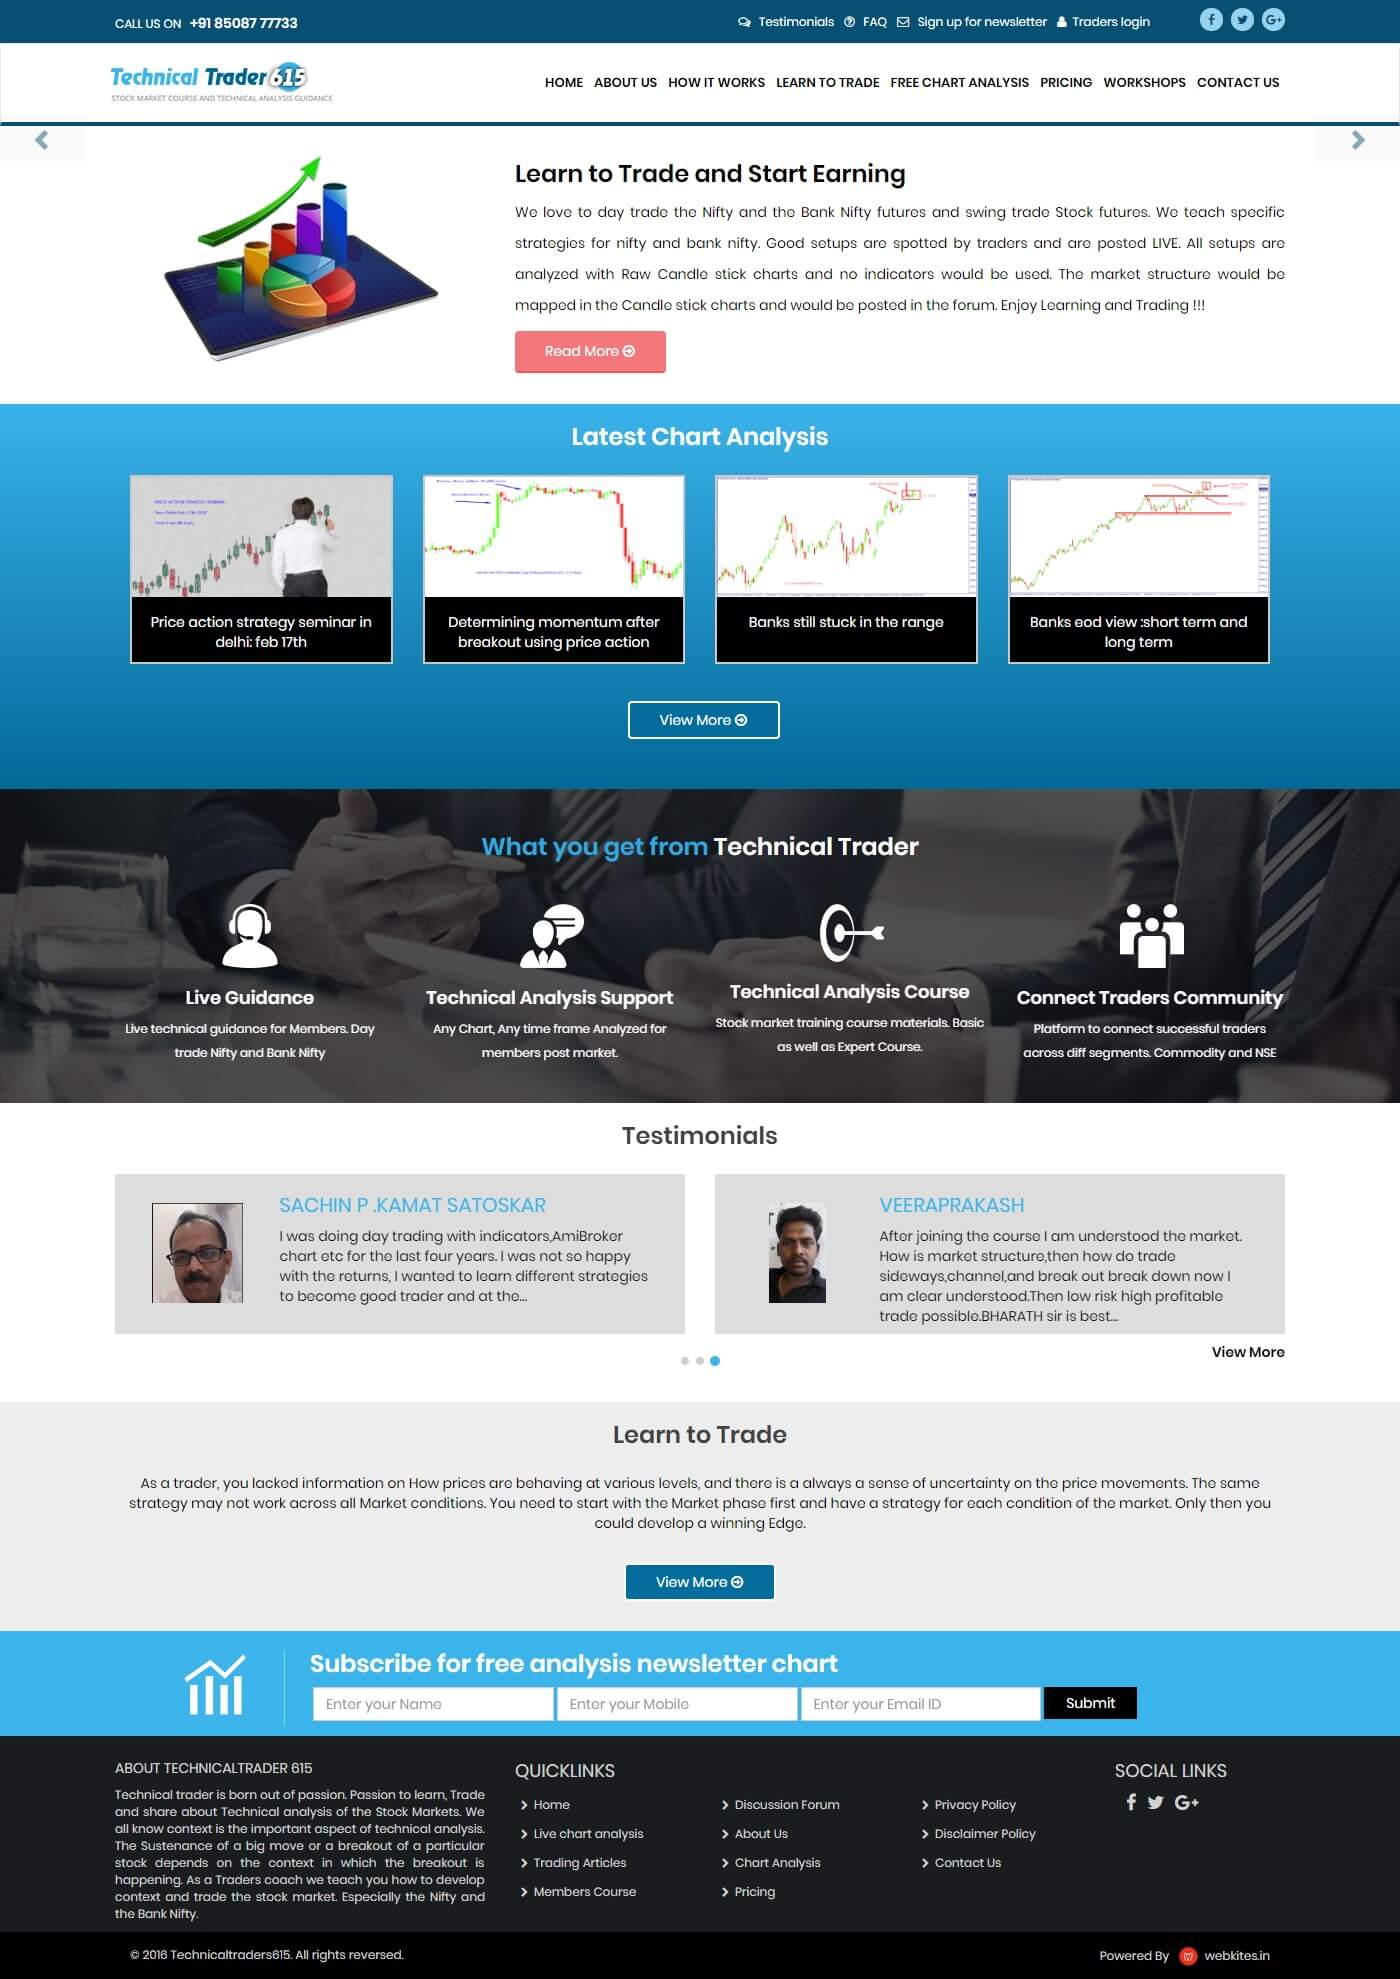 Dynamic Website for Technical Trader615